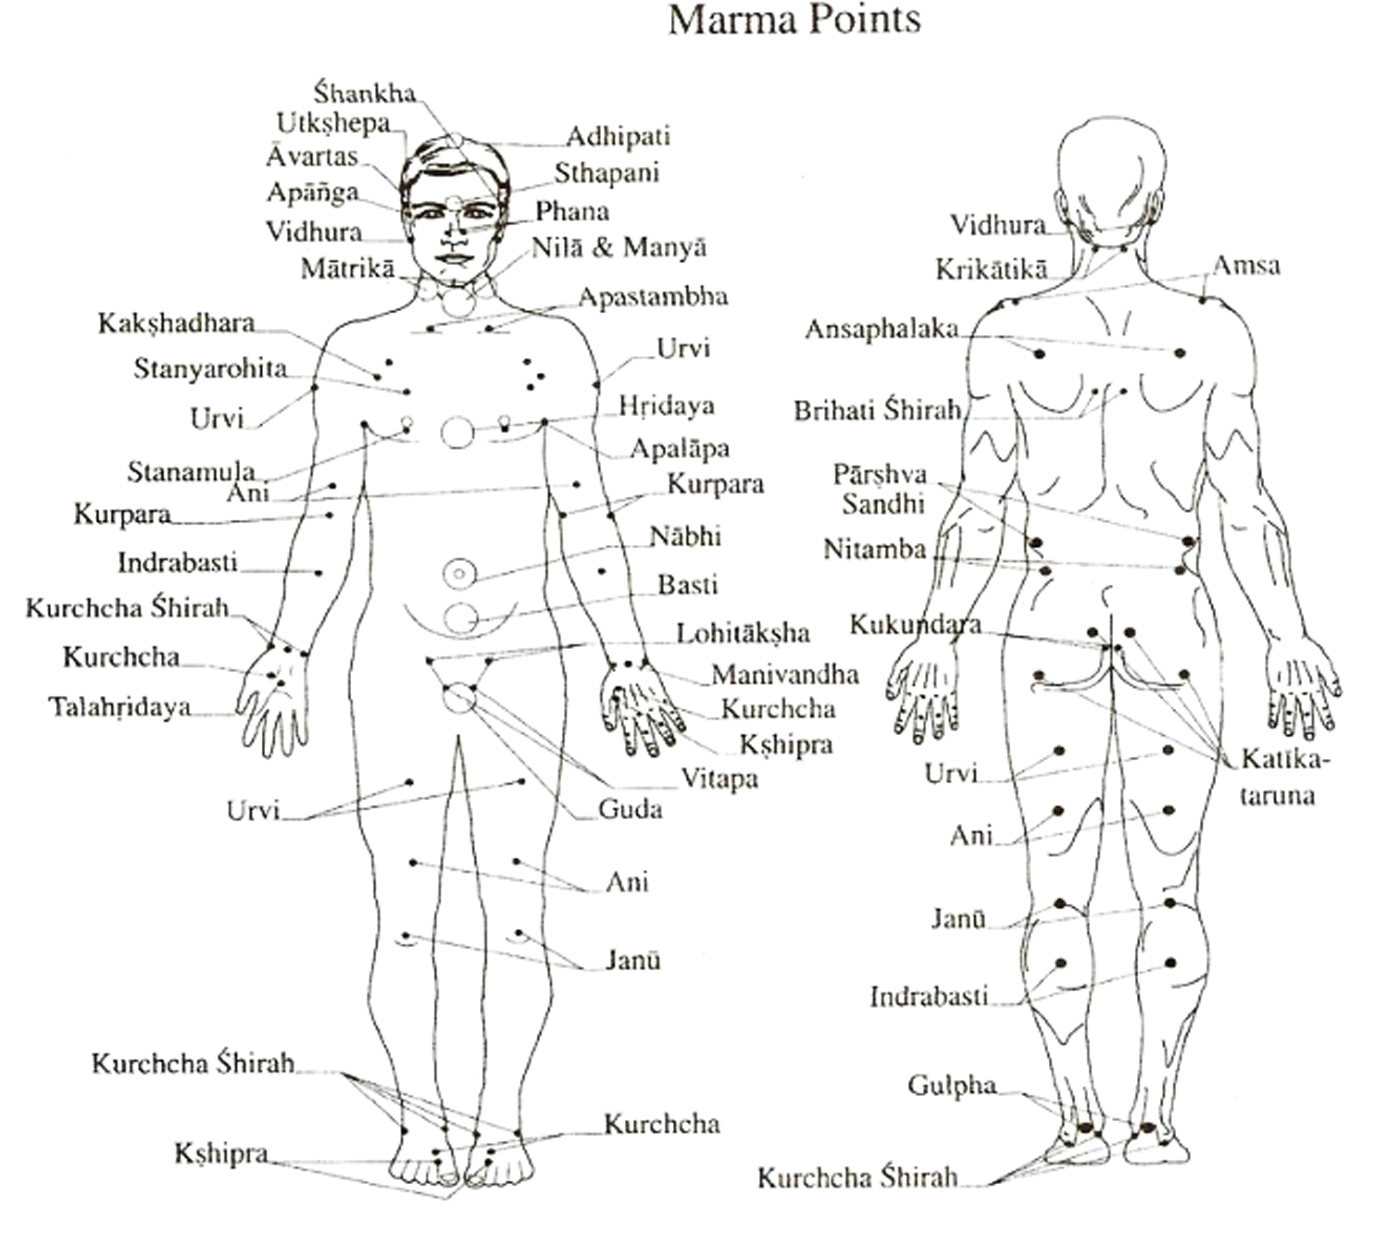 marmas points yoga&vedas